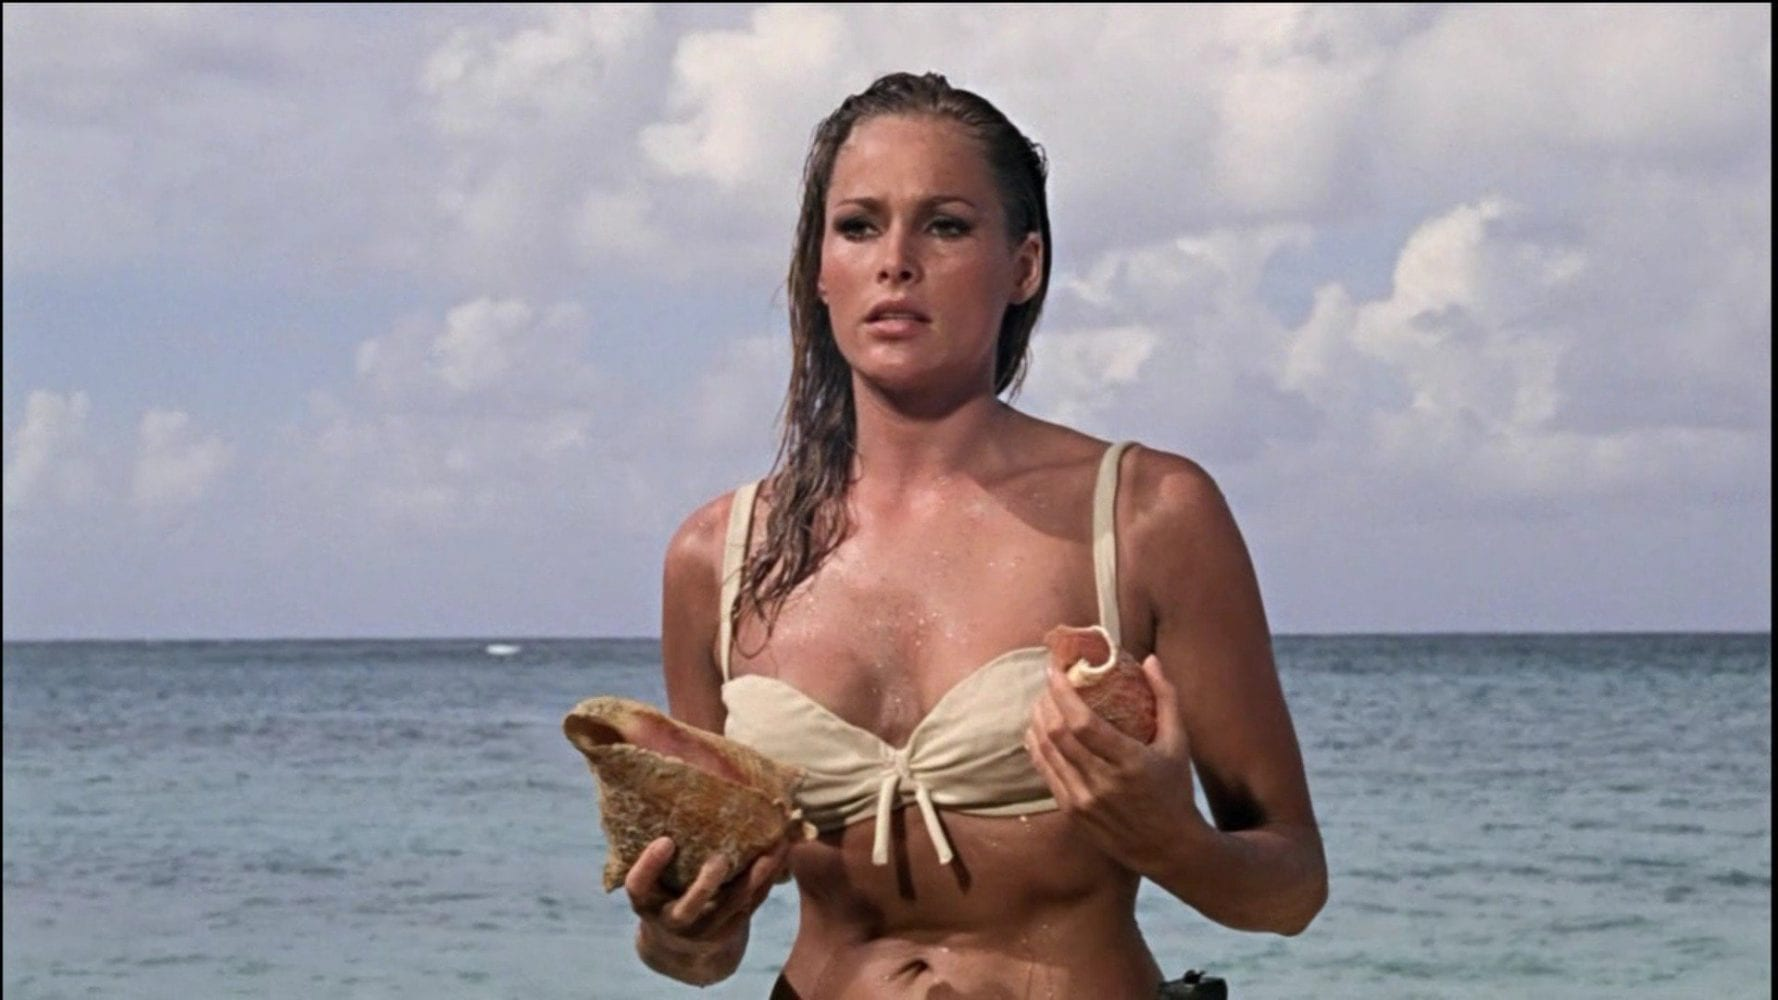 ursula andress and her shells, James Bond, Dr. No, Sean Connery, 007